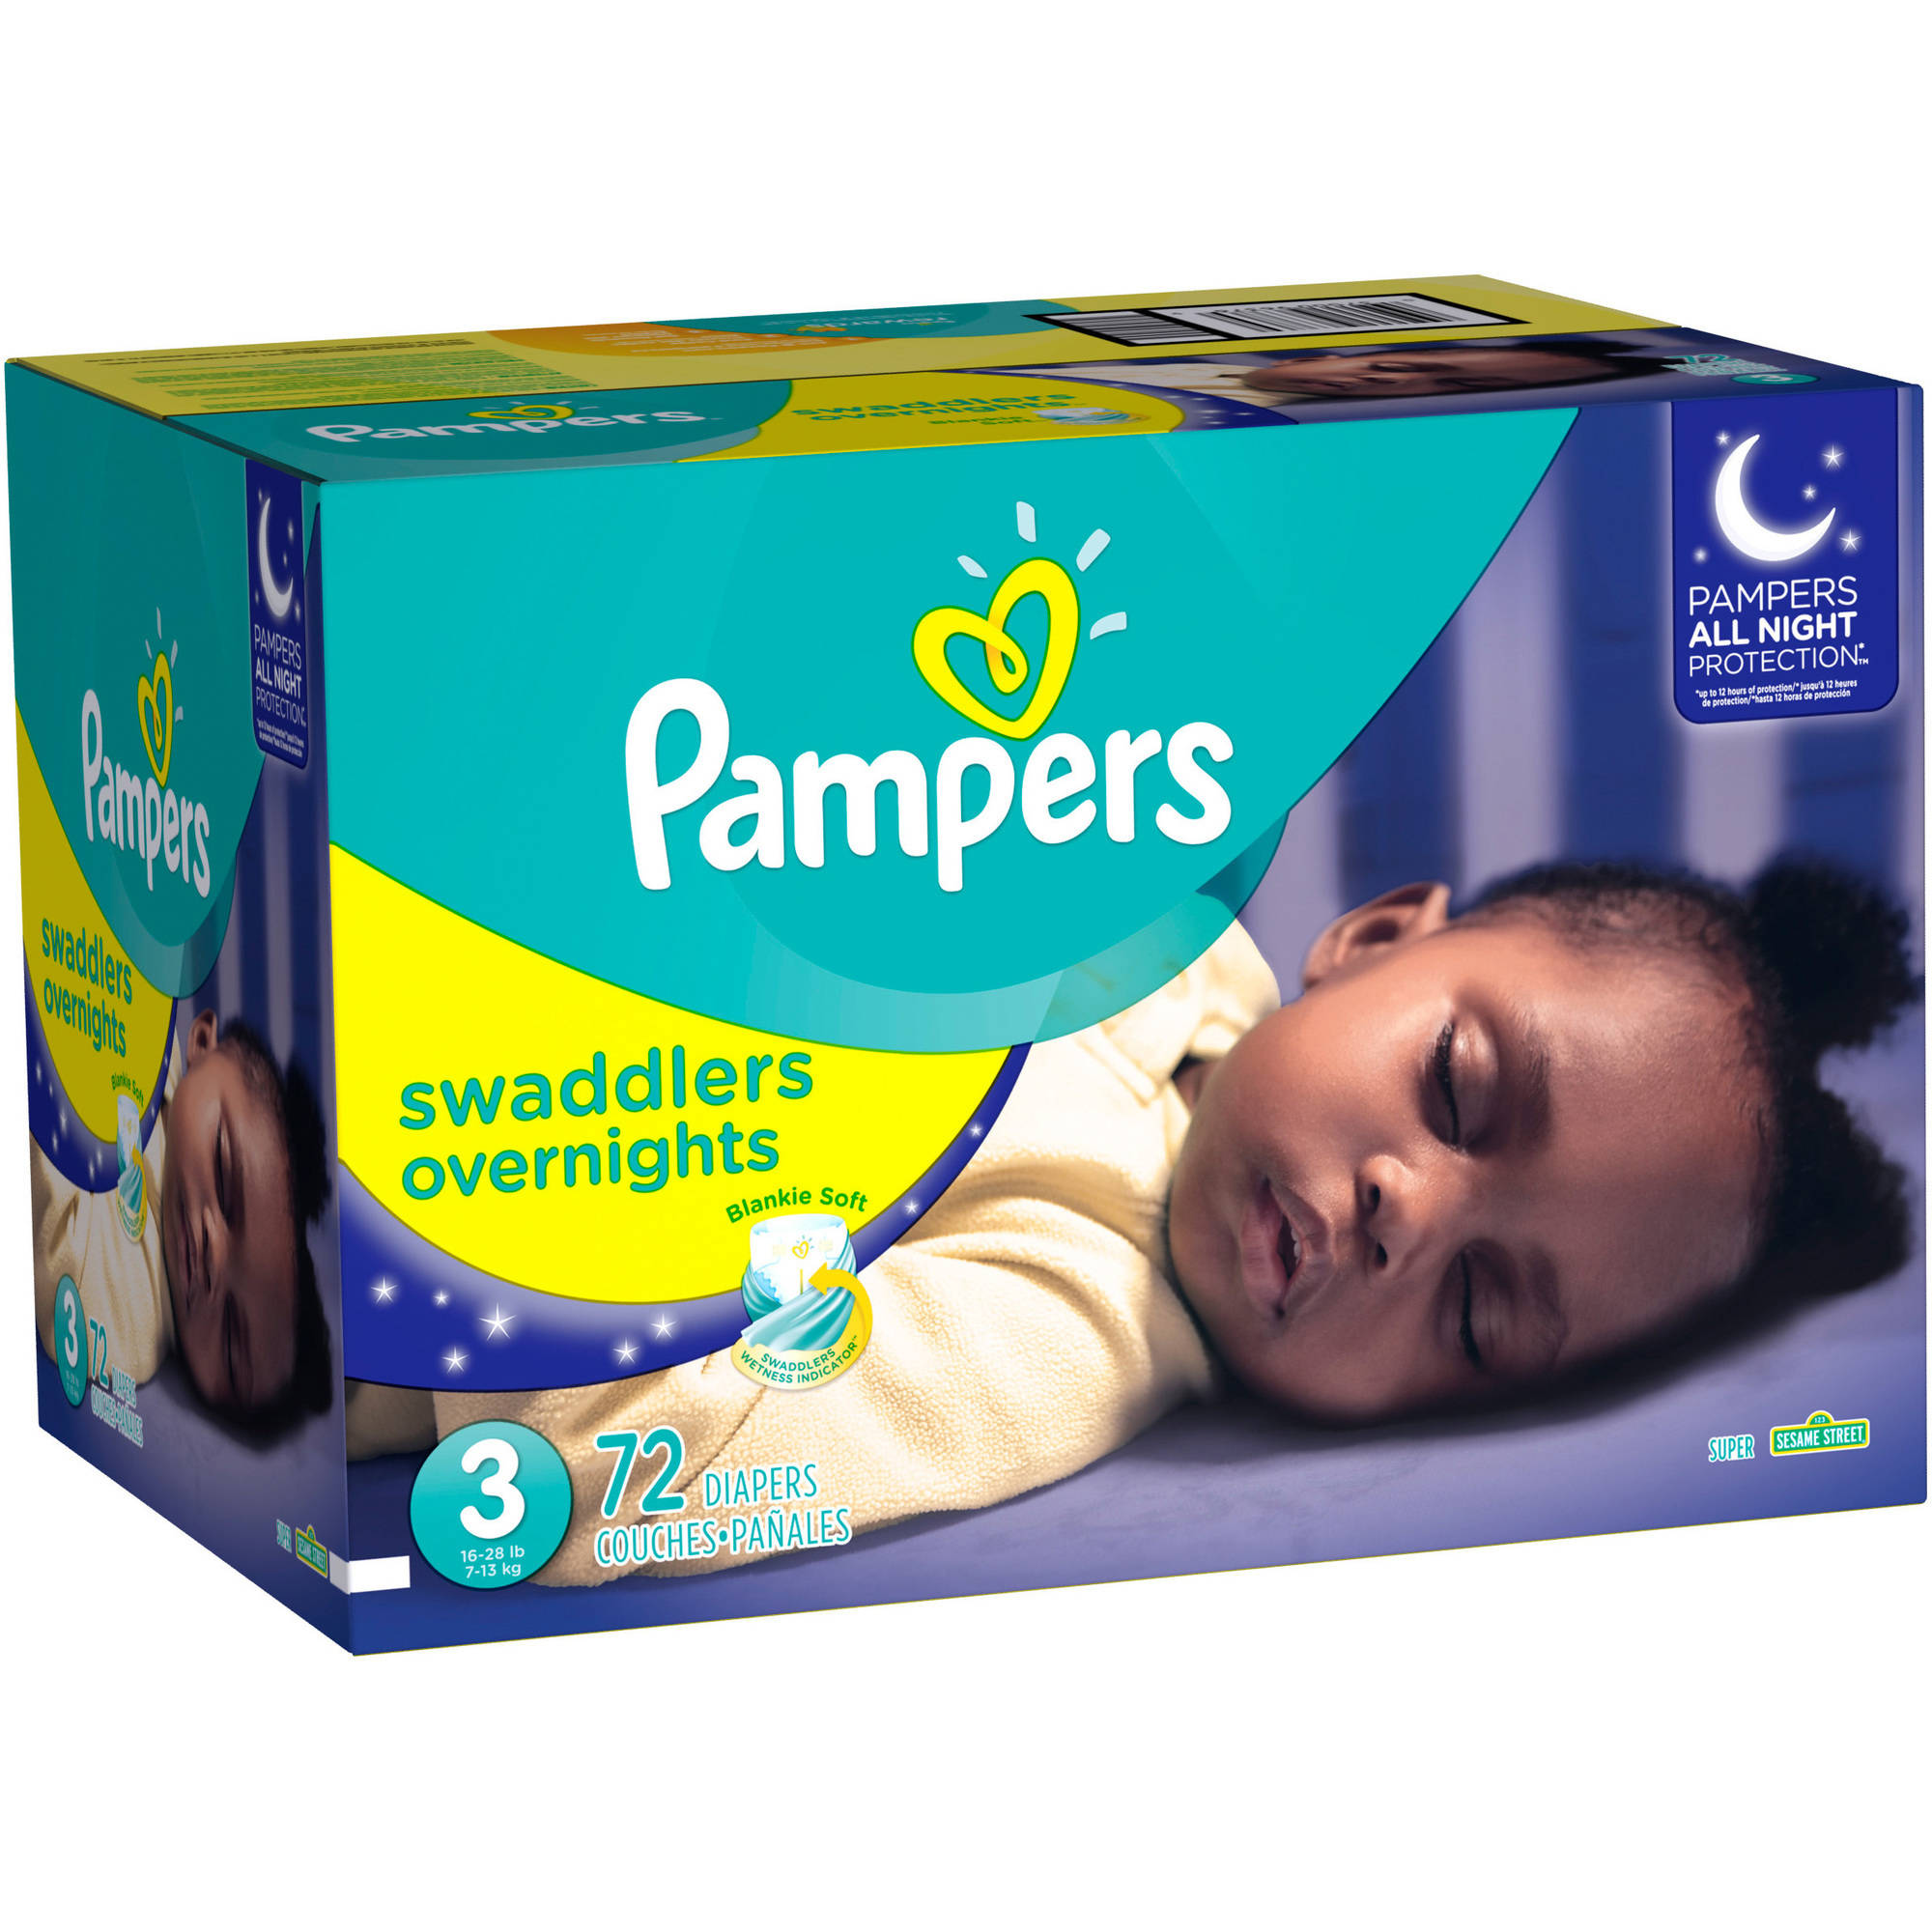 Pampers Swaddlers Overnights Diapers, (Choose Your Size)